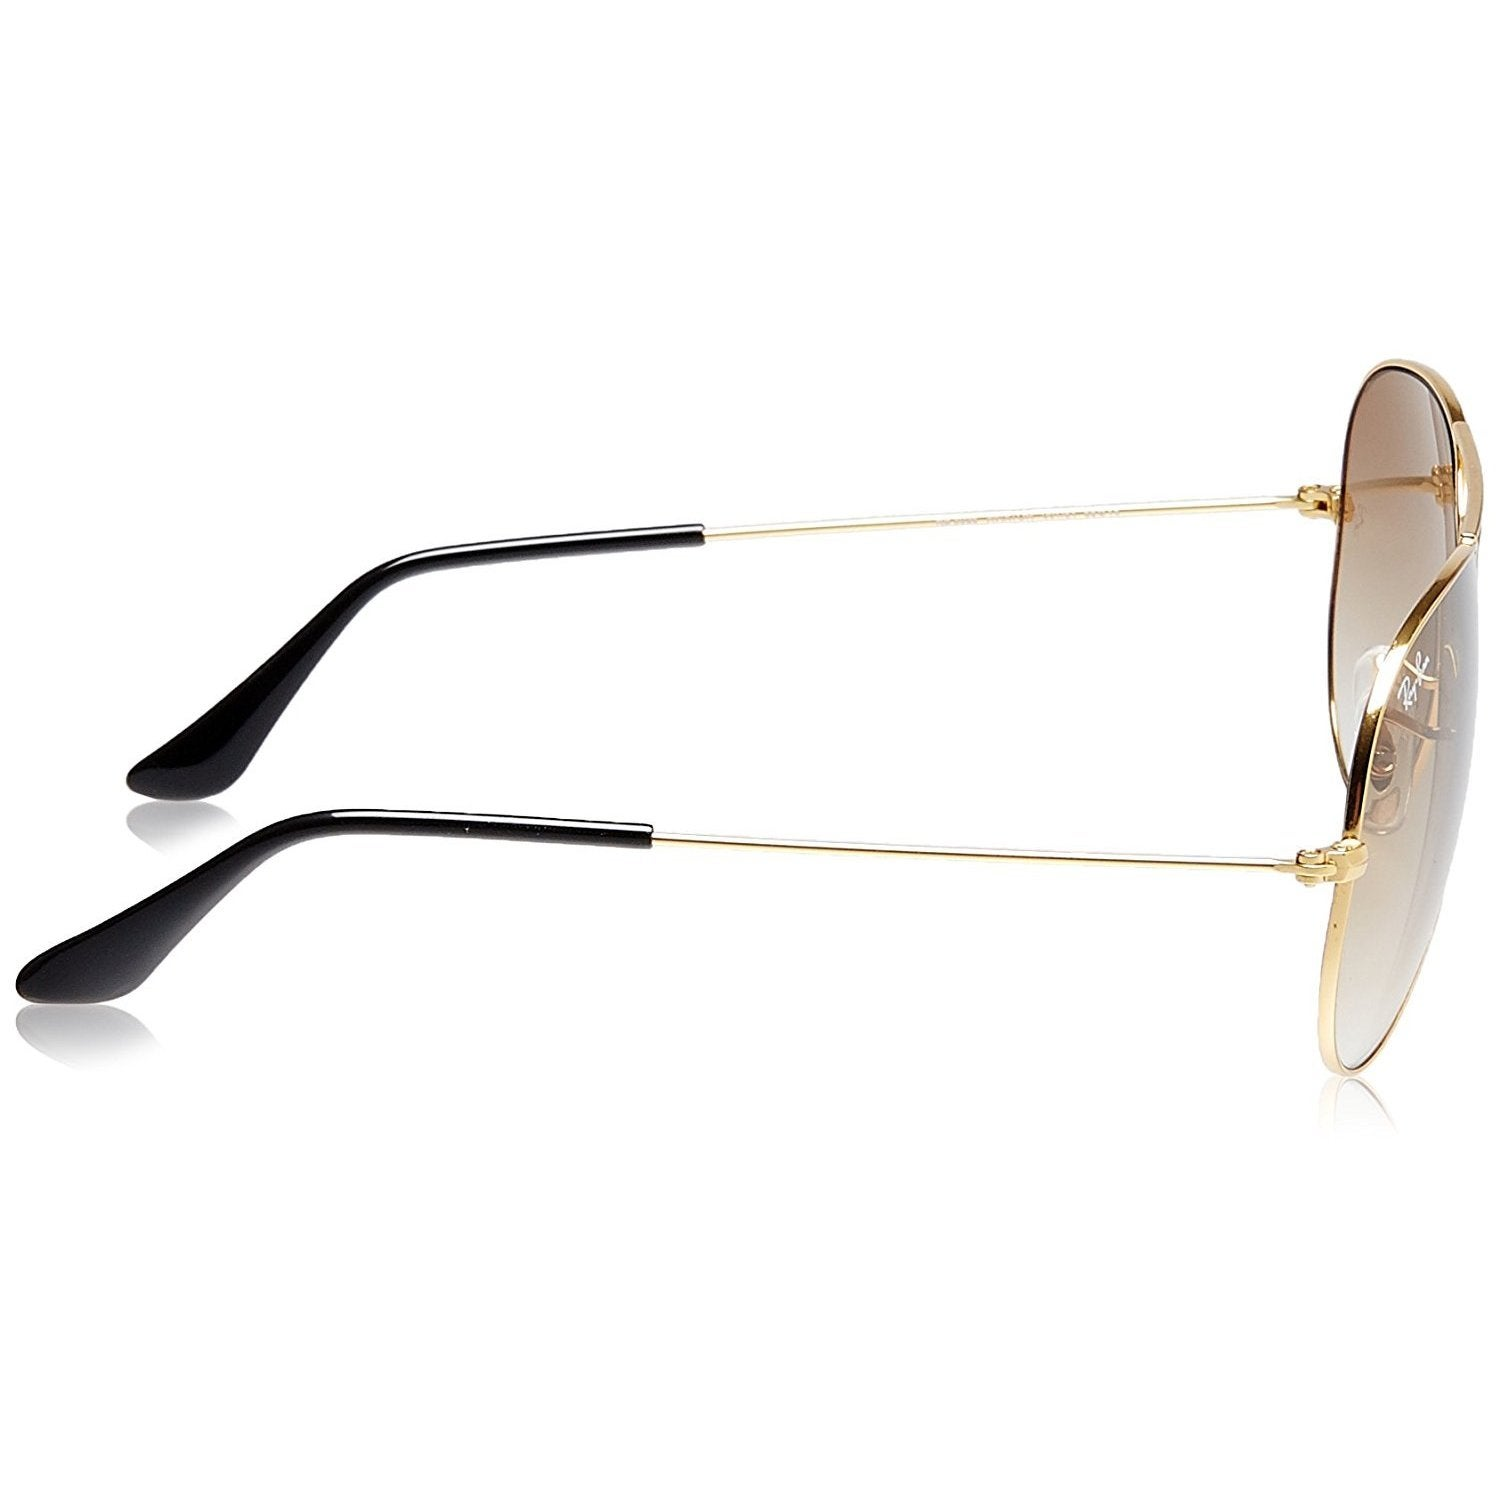 6e8cfc582fa Shop Ray-Ban Aviator  RB3025  Unisex Gold Frame Light Brown Gradient Lens  Sunglasses - On Sale - Free Shipping Today - Overstock - 8546523